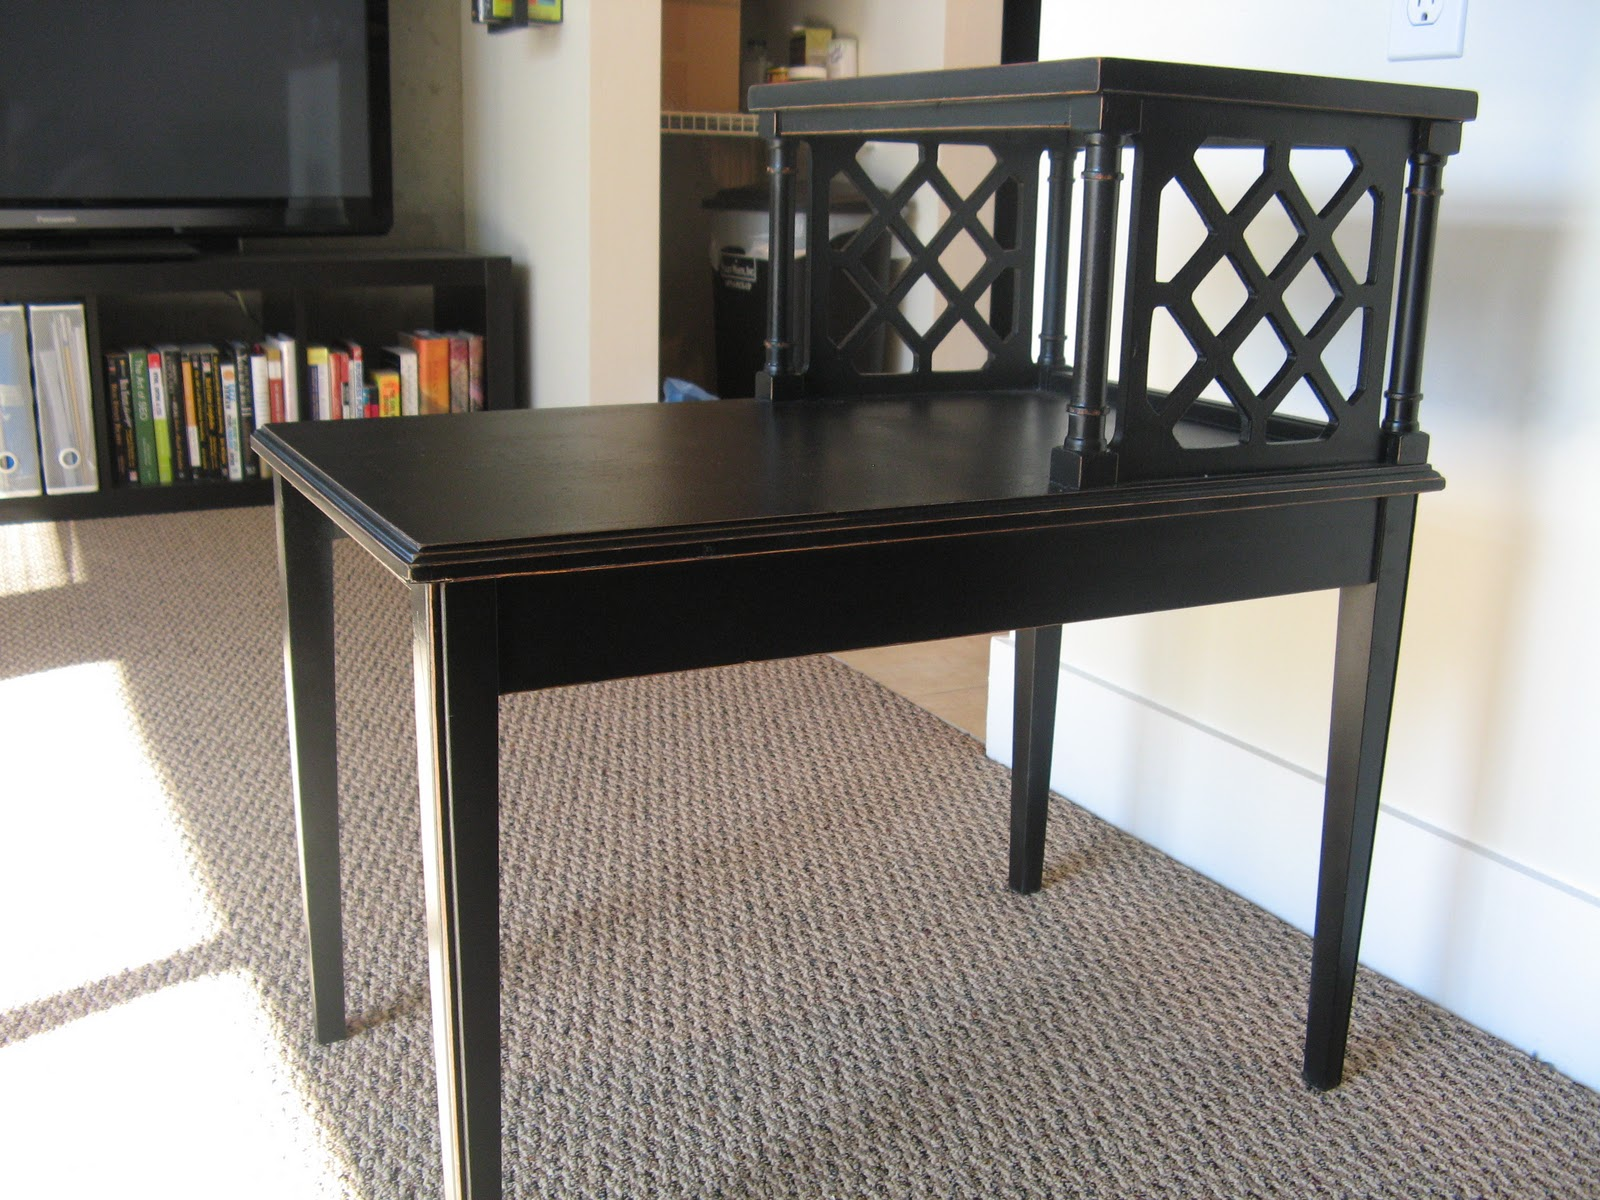 vintage french provincial two tier end table for sale thrifty business phx. Black Bedroom Furniture Sets. Home Design Ideas